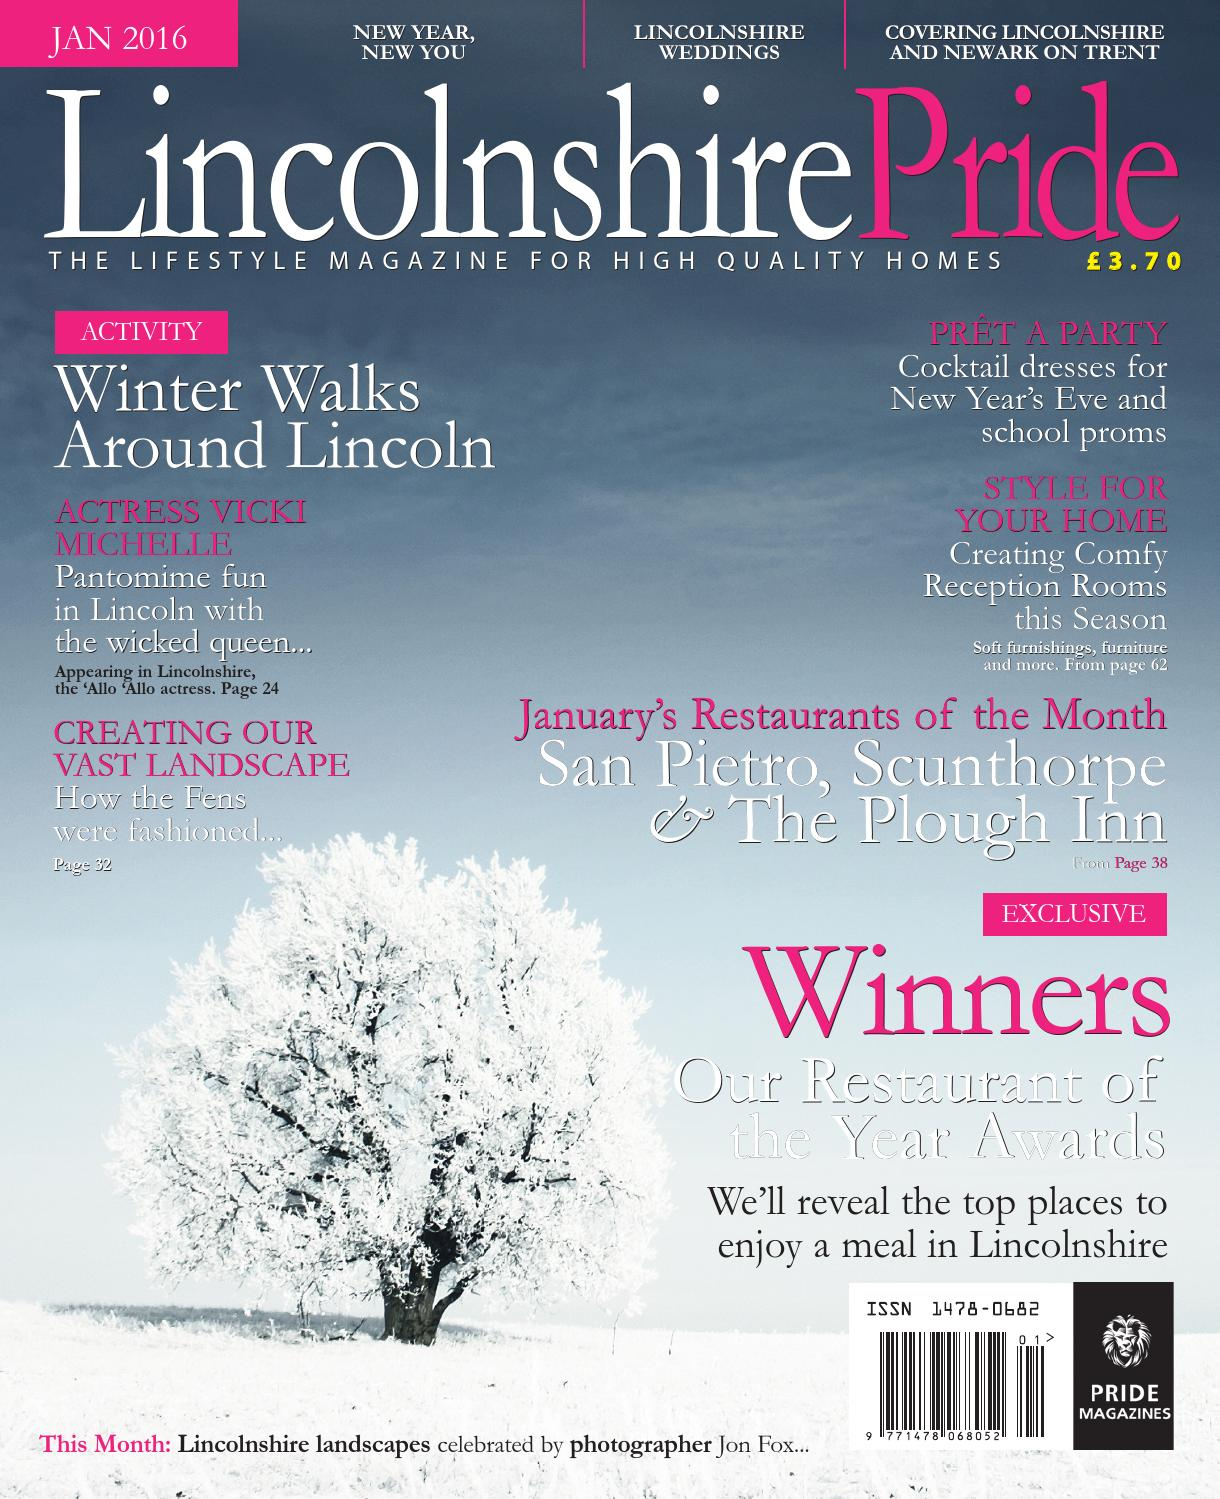 Lincolnshire Pride January 2016 by Pride Magazines Ltd - issuu